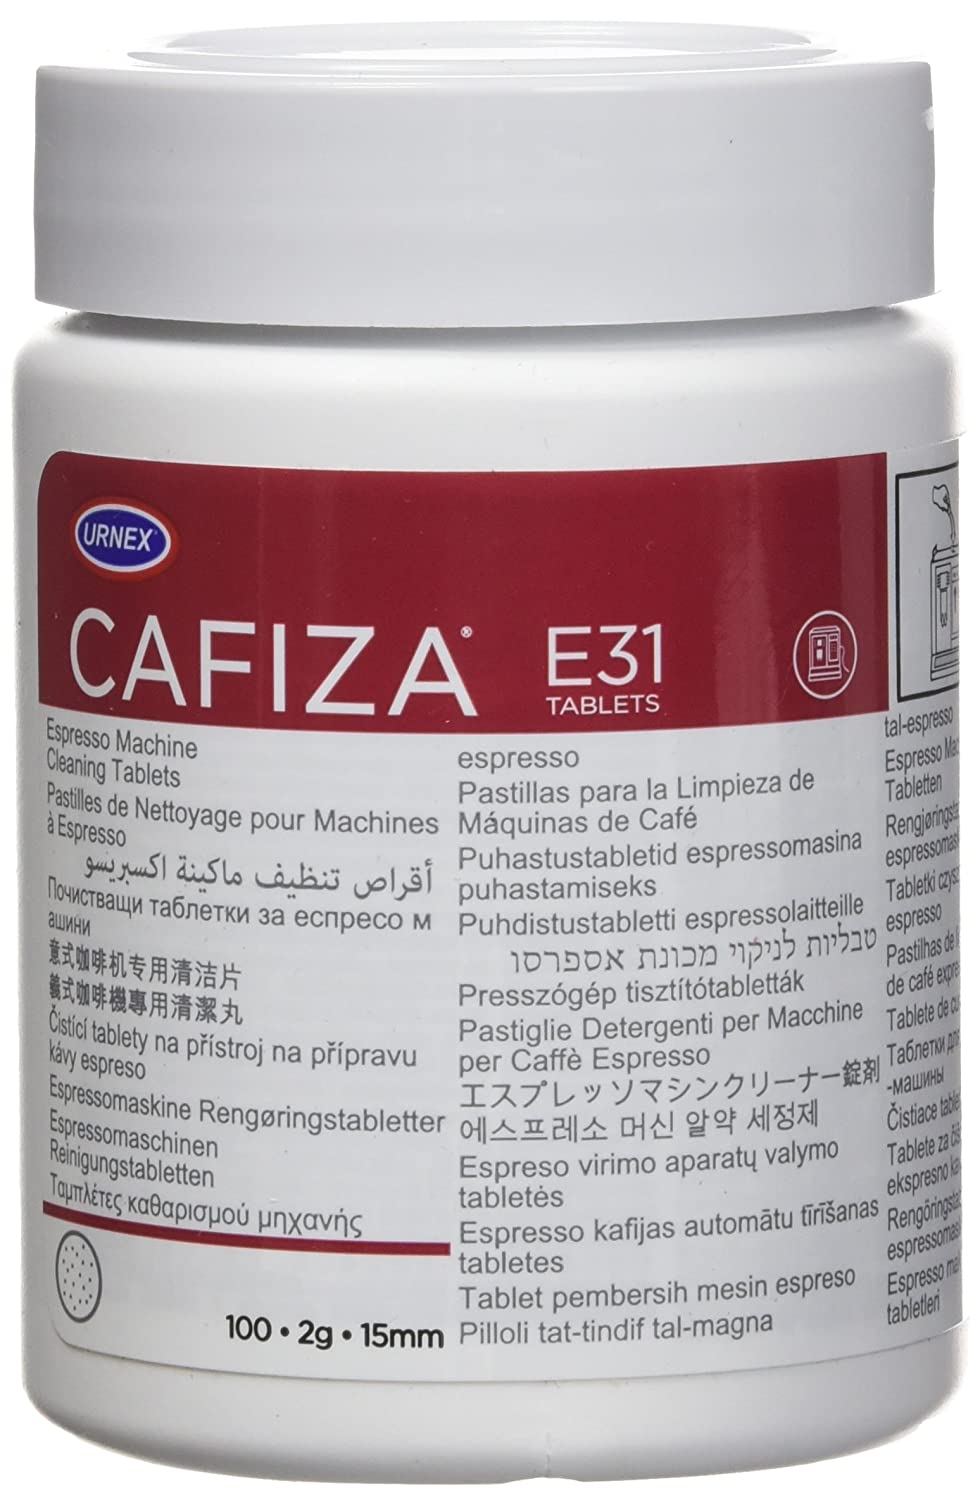 Urnex Cafiza Espresso Machine Cleaning Tablets, 100 Tablets 12-E31-UX100